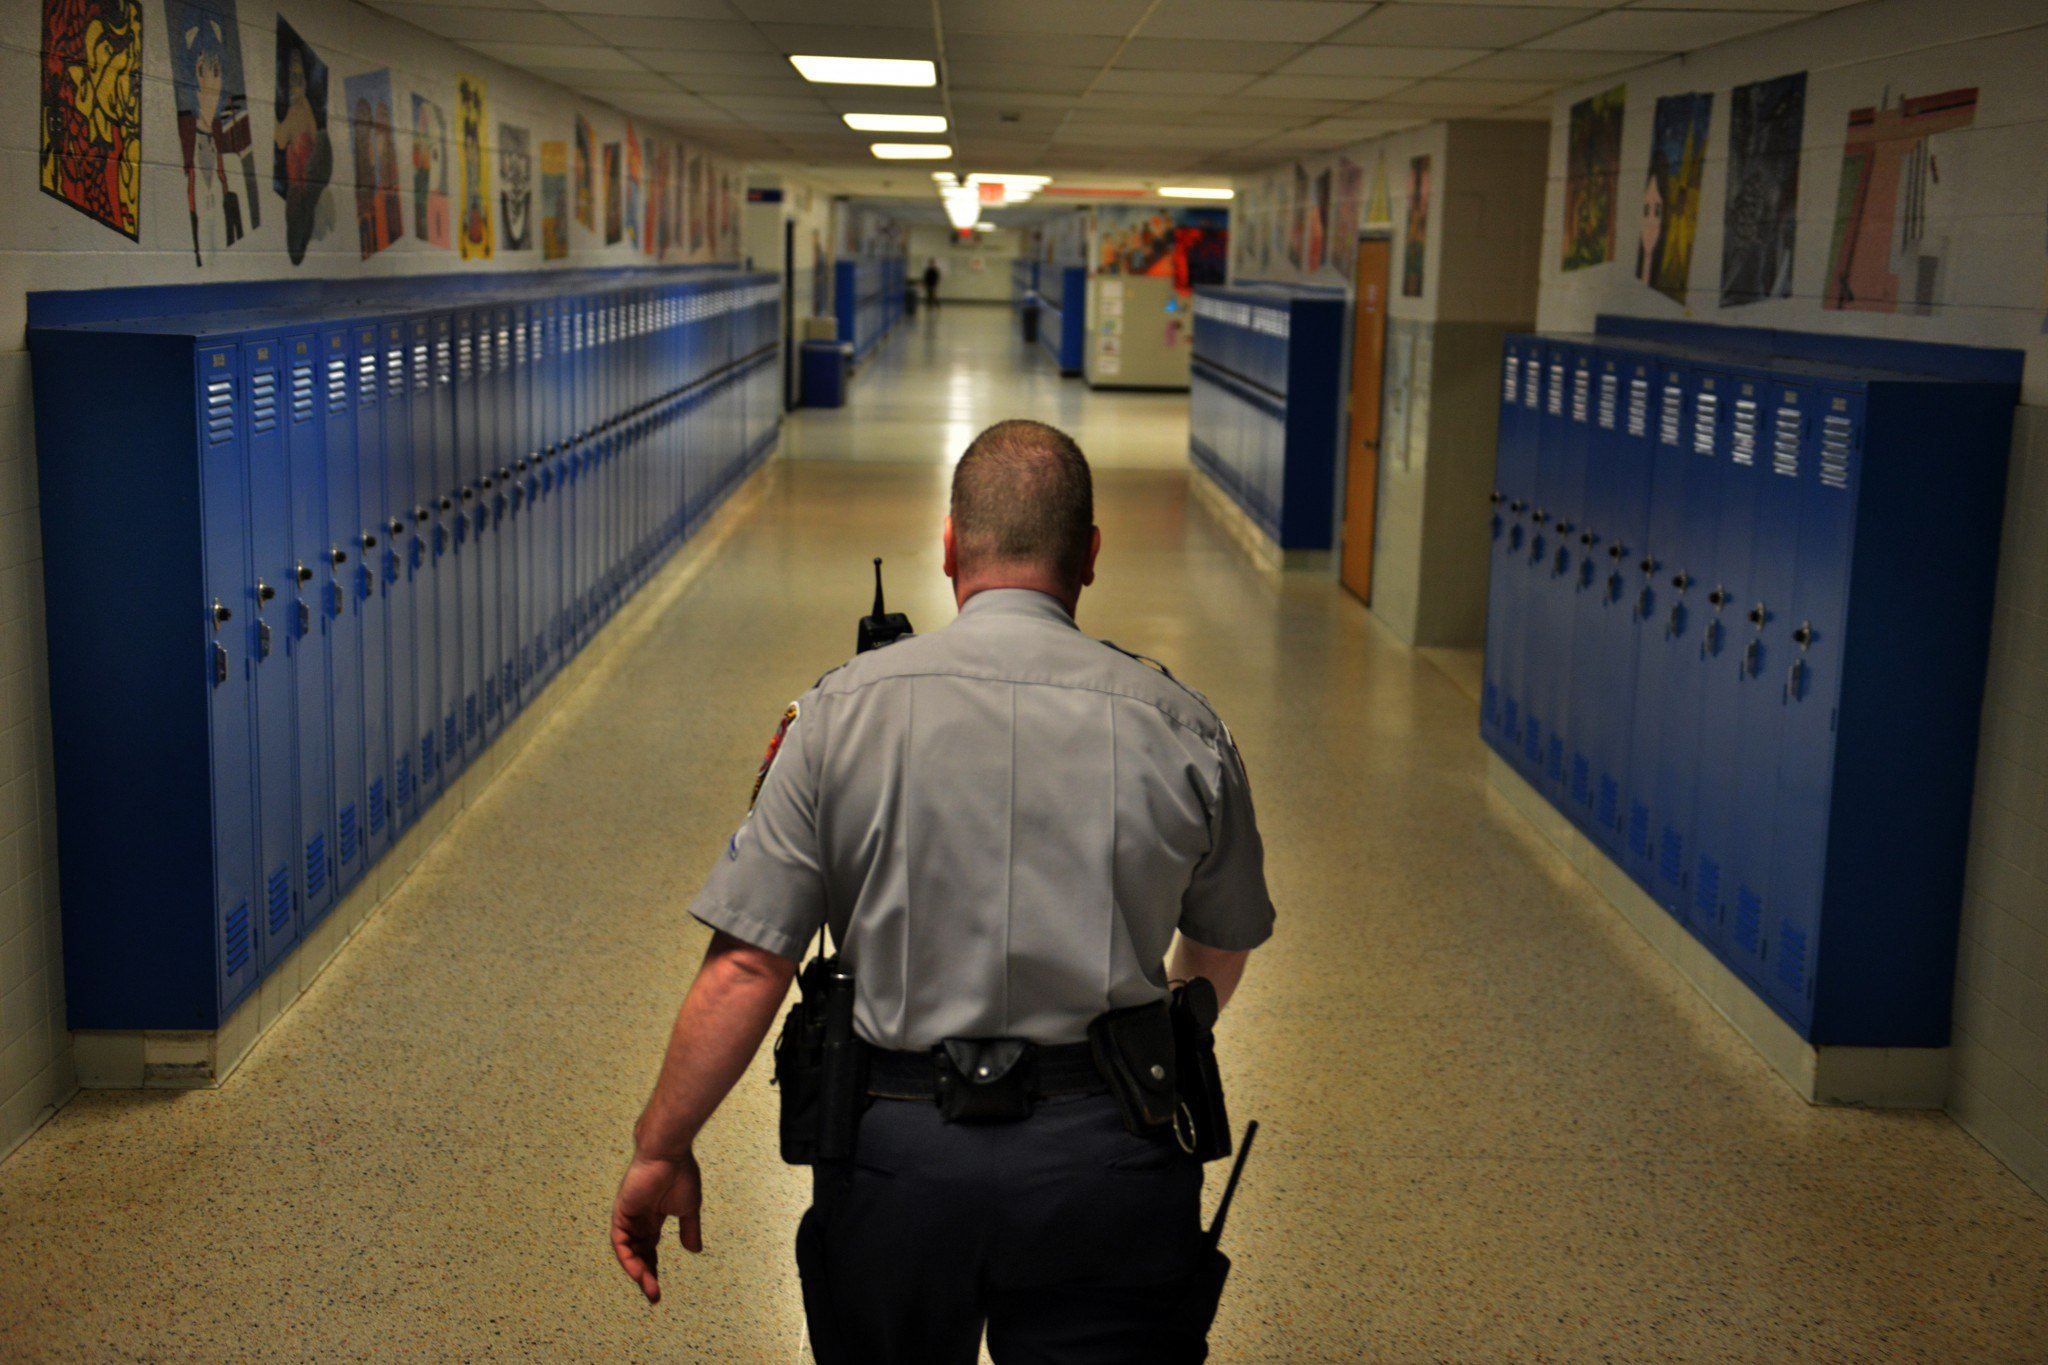 Pennsylvania School District Backtracks Will Now Deploy Armed Guards Instead Of Buckets Of Rocks